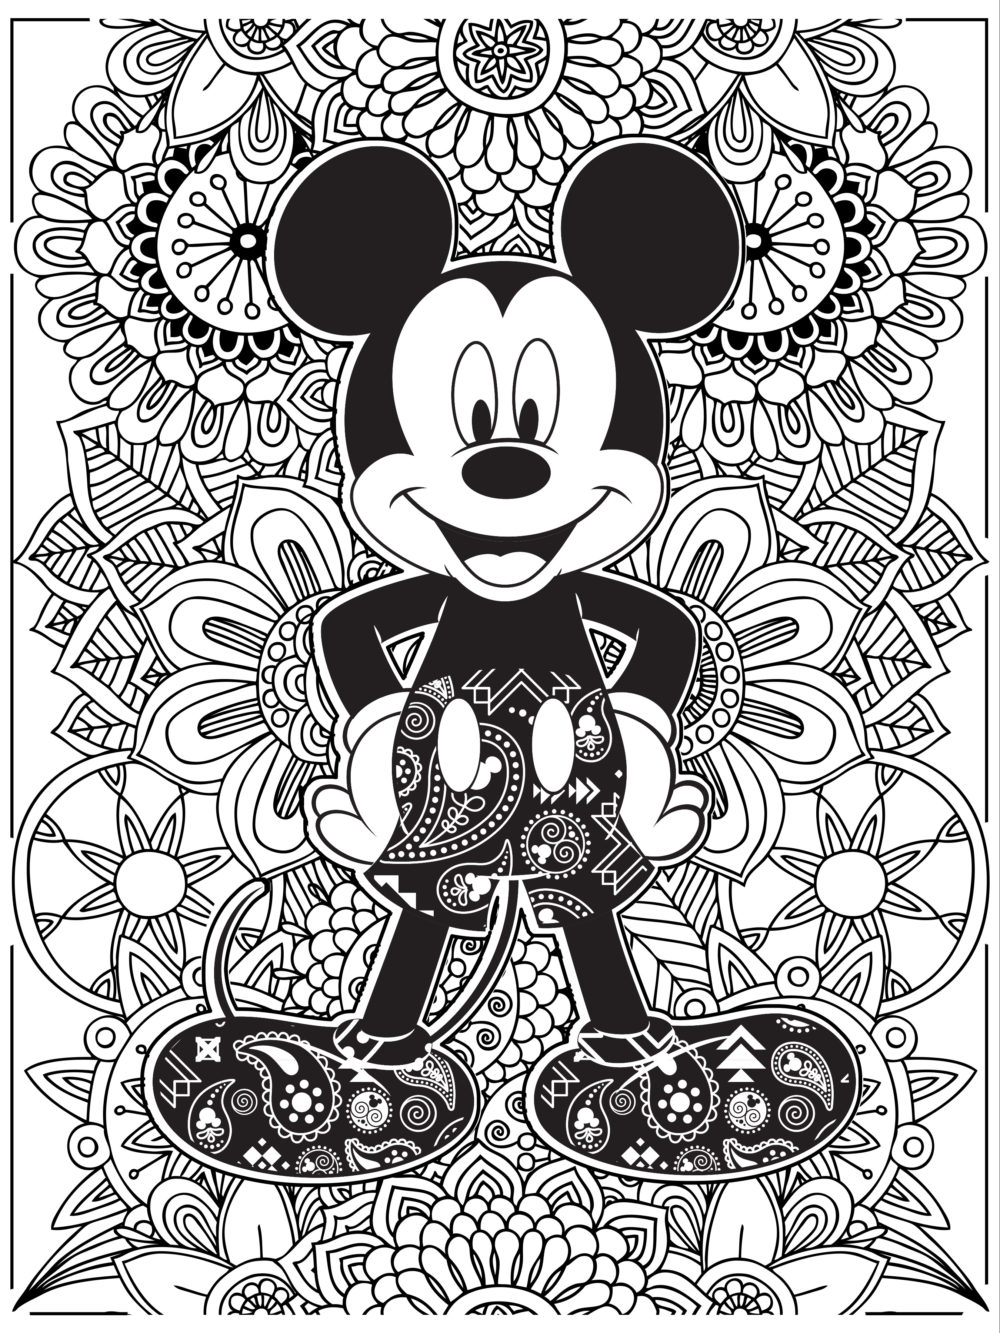 Coloring Pages ~ Coloringbook Lineart Mickeymouse Coloring Pages